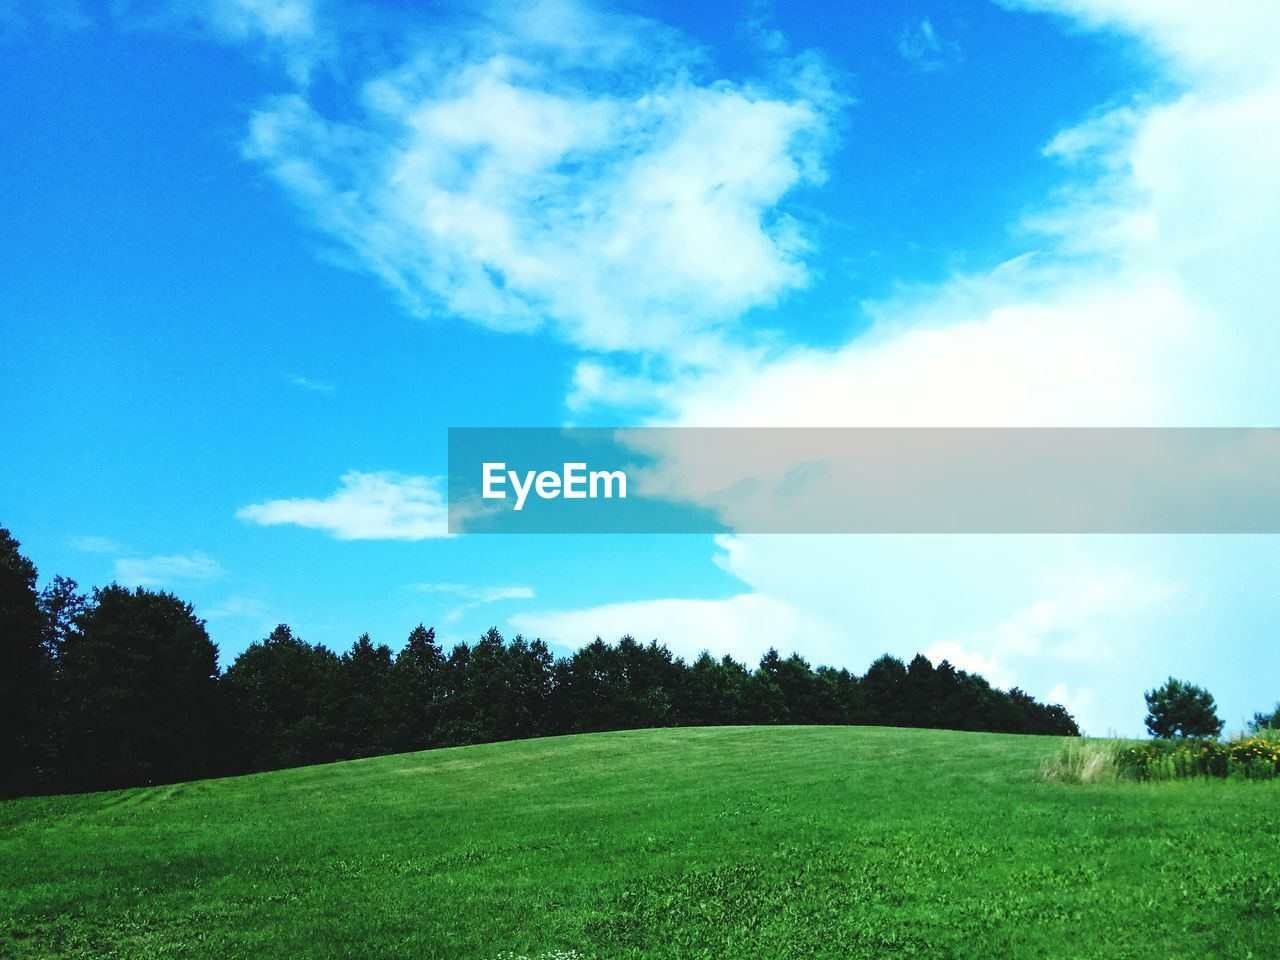 plant, sky, grass, cloud - sky, tree, tranquil scene, green color, landscape, beauty in nature, scenics - nature, environment, tranquility, land, field, nature, day, no people, non-urban scene, blue, growth, outdoors